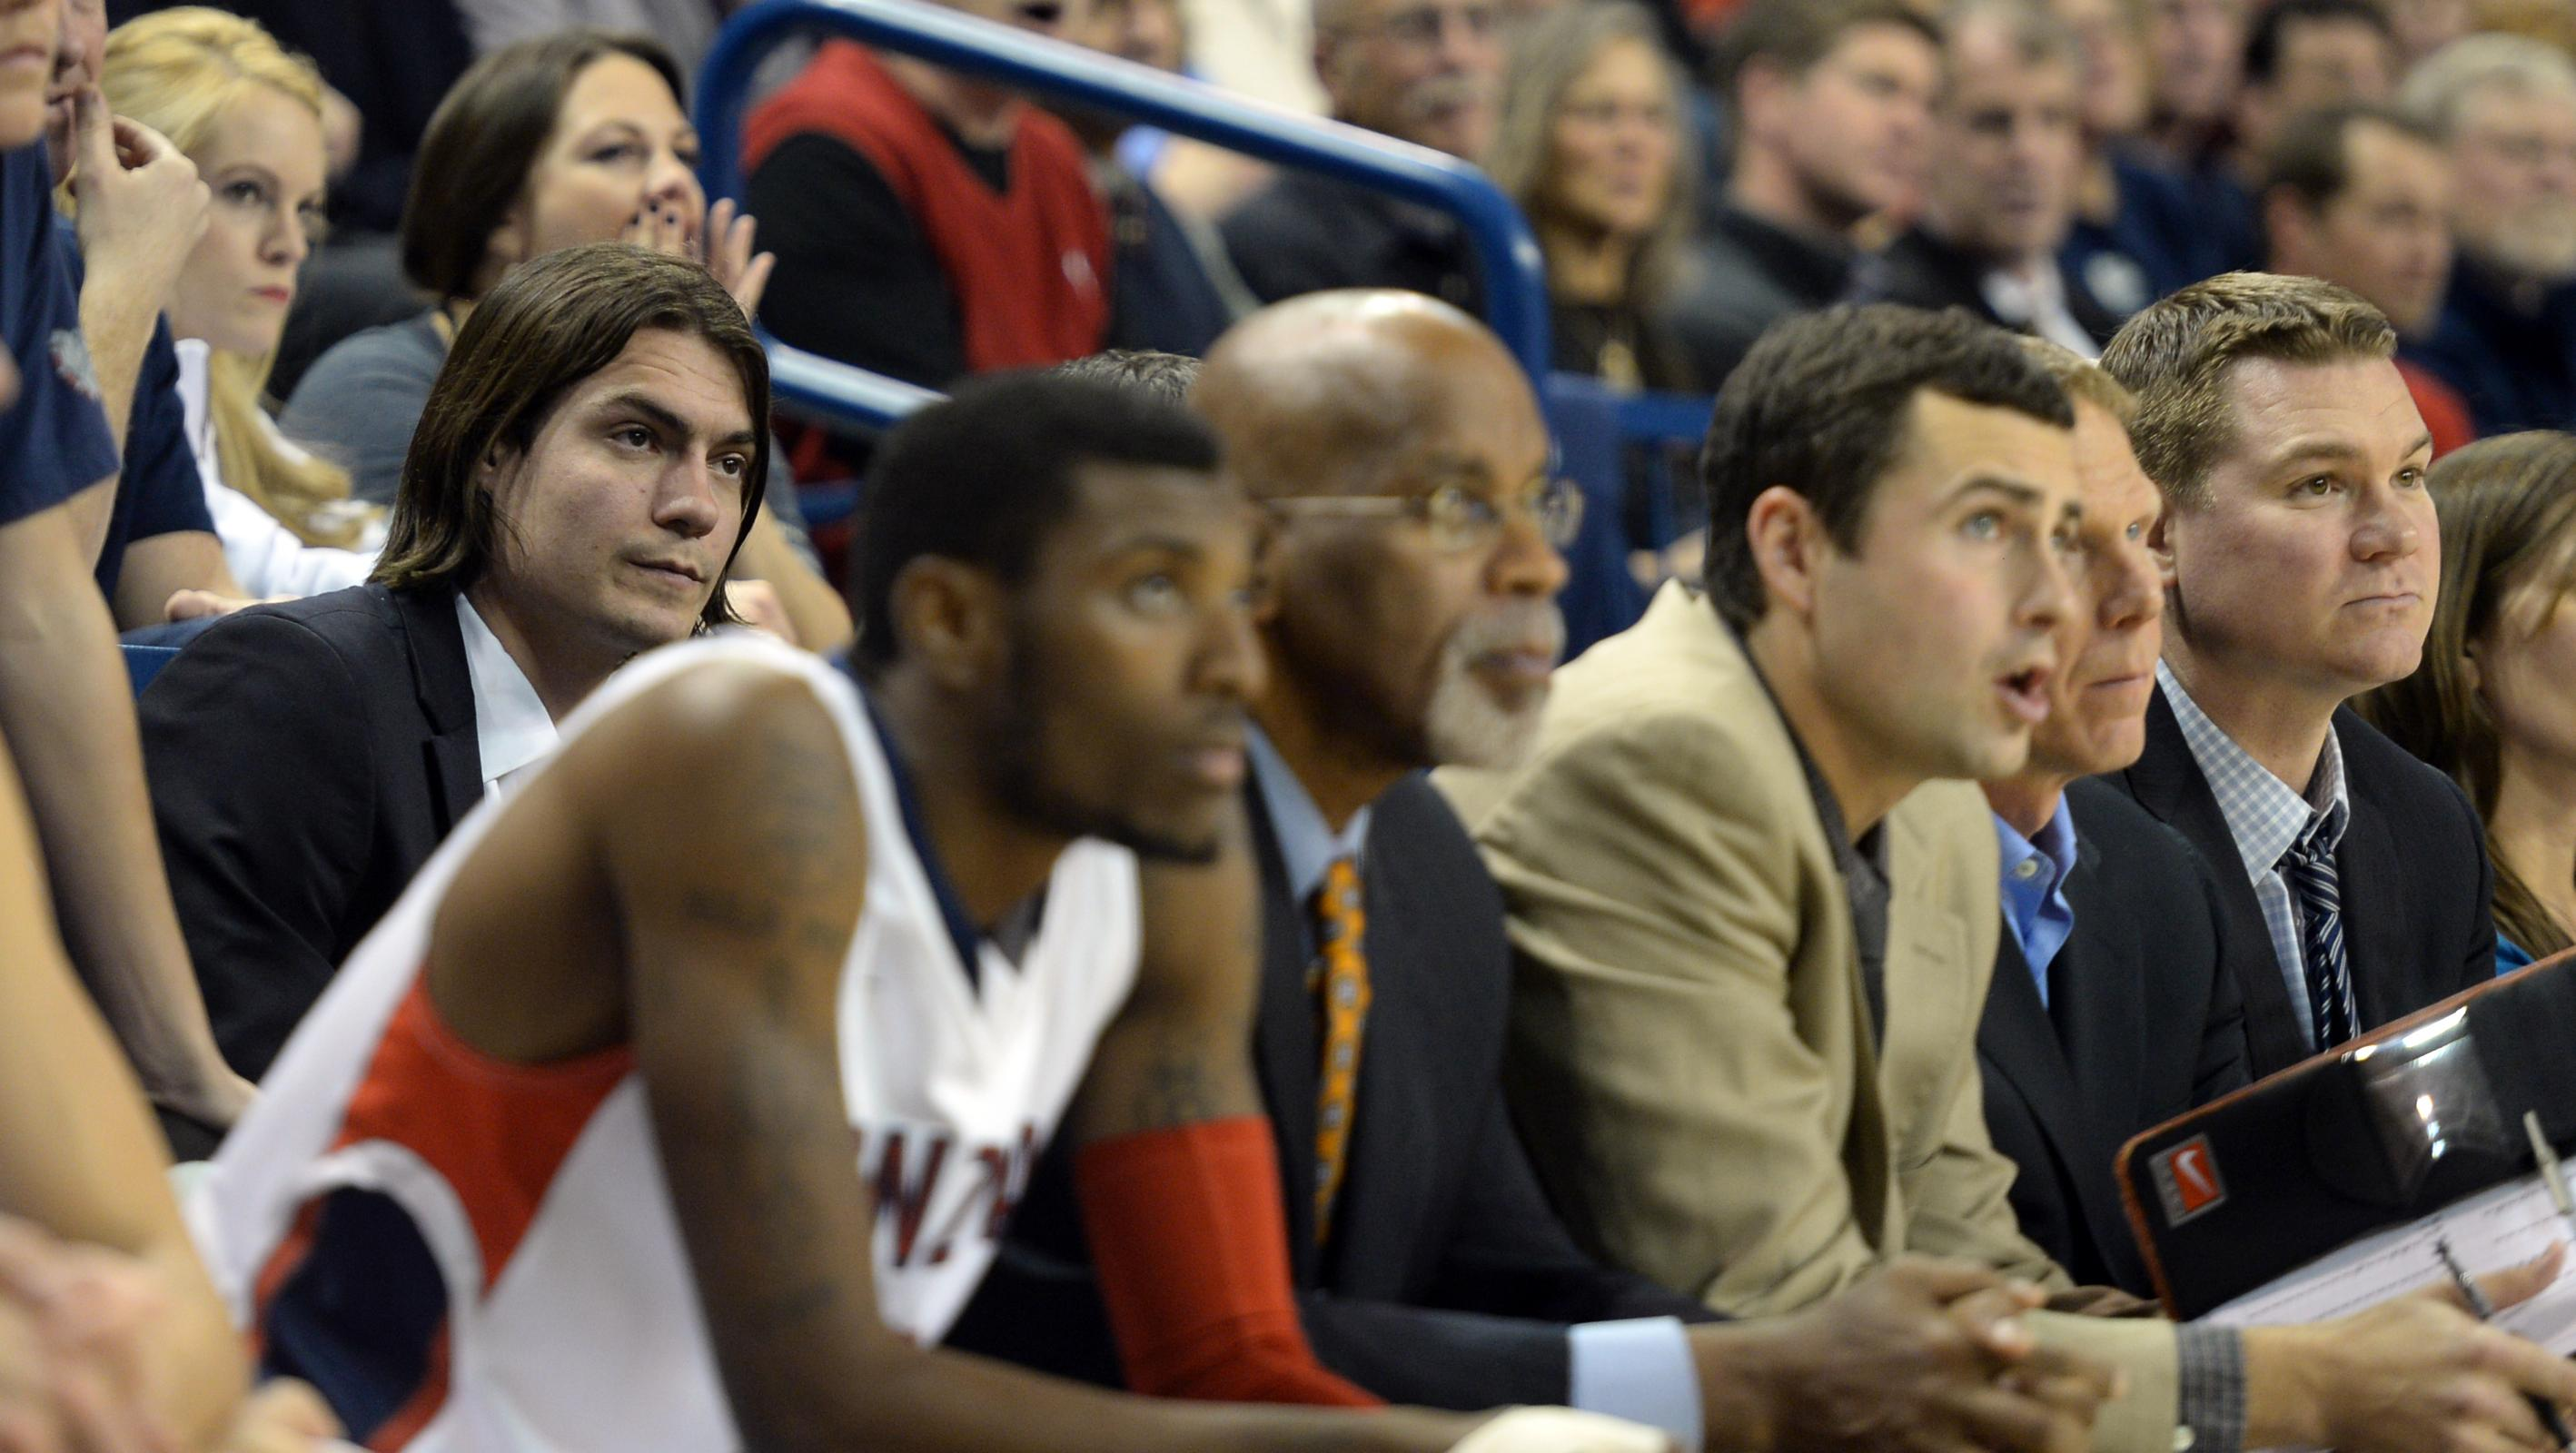 e7bbf9ed72c Former GU star Adam Morrison takes a second-row seat as a student assistant  during